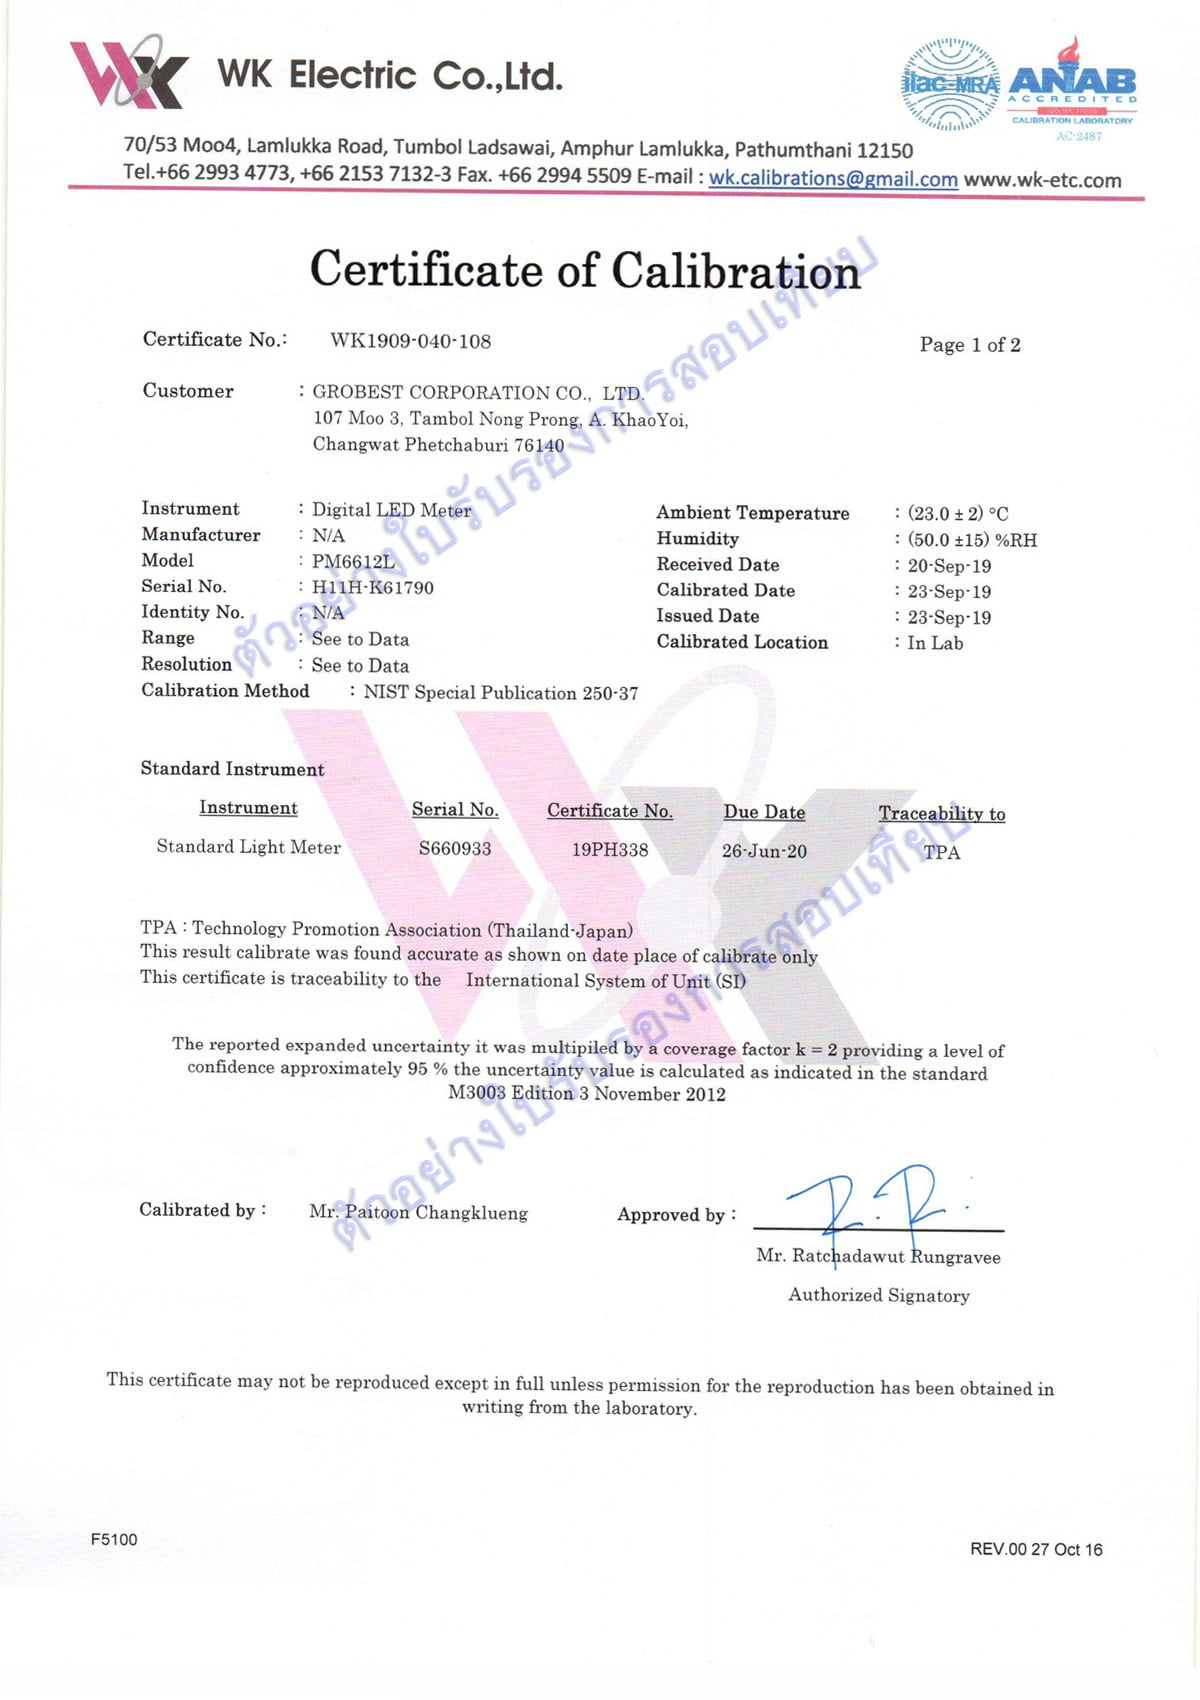 Certificate PM6612L Page 1